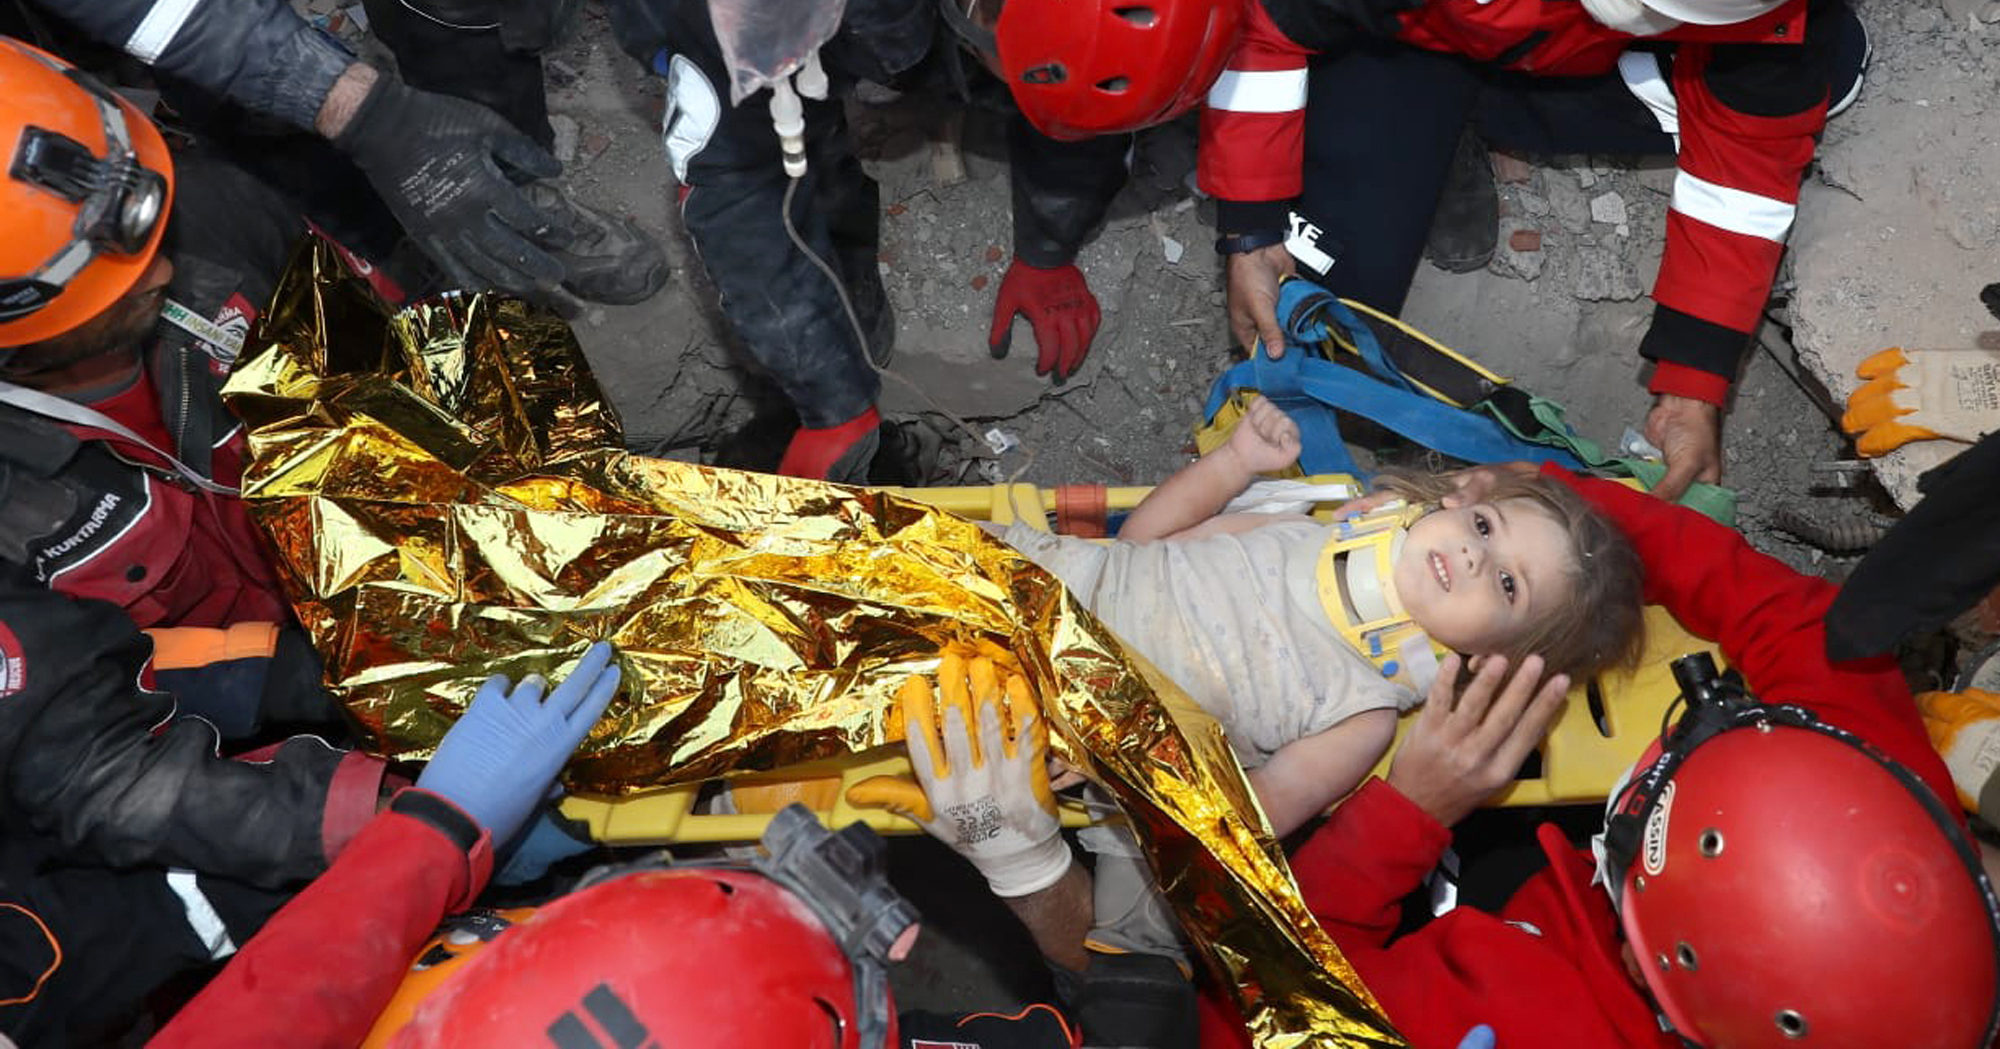 Rescue workers surround Ayda Gezgin in the coastal city of Izmir, Turkey, on Nov. 3, 2020, after pulling her out alive from the rubble of a collapsed apartment building four days after a strong earthquake hit Turkey and Greece.